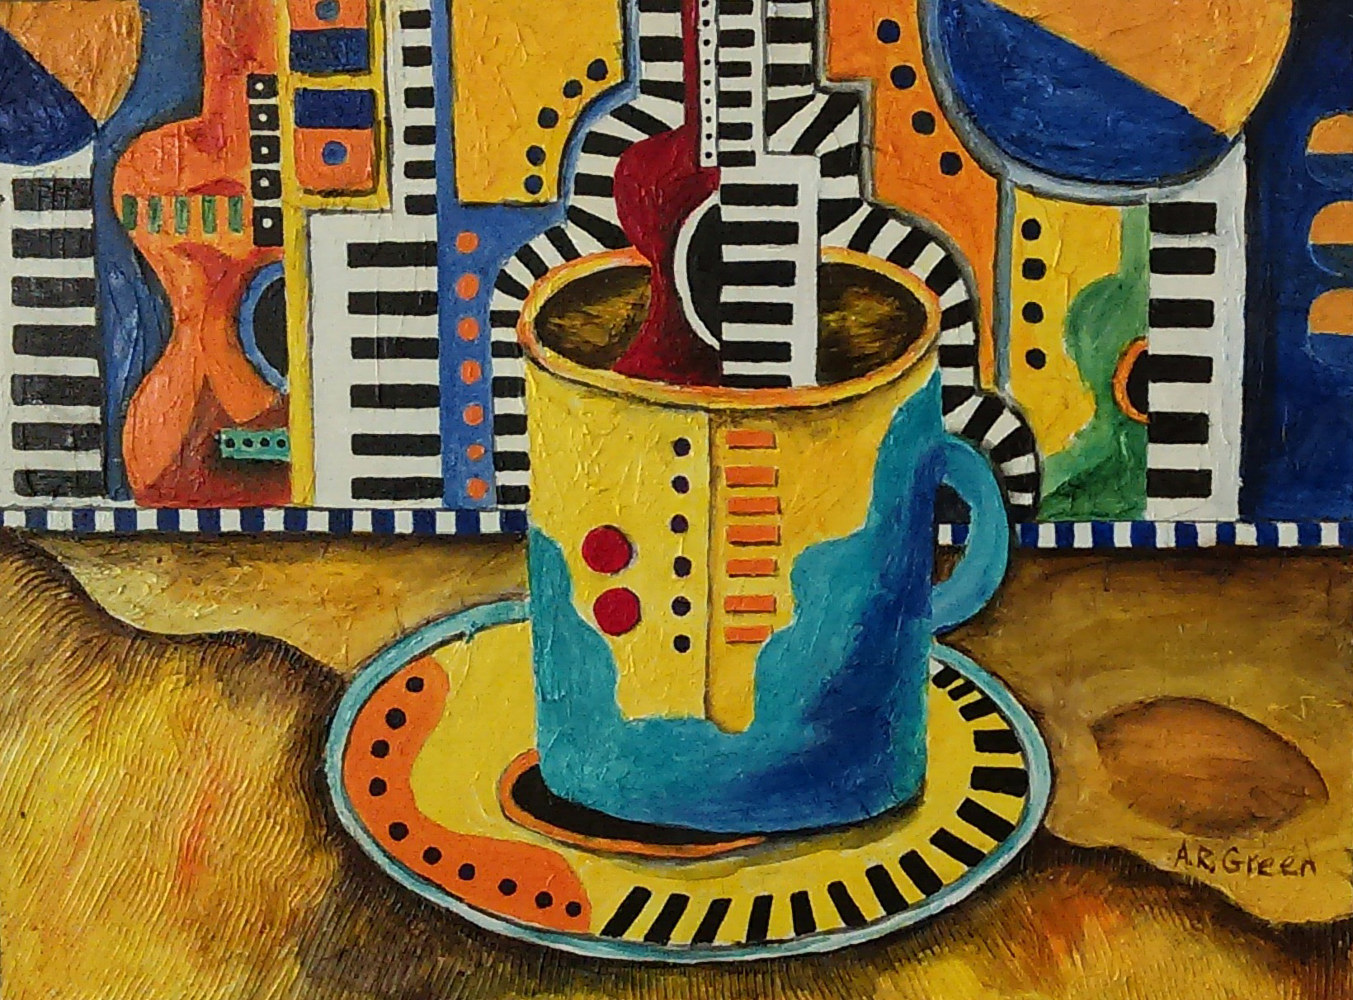 Acrylic painting A Taste of Jazz III by Angela  Green